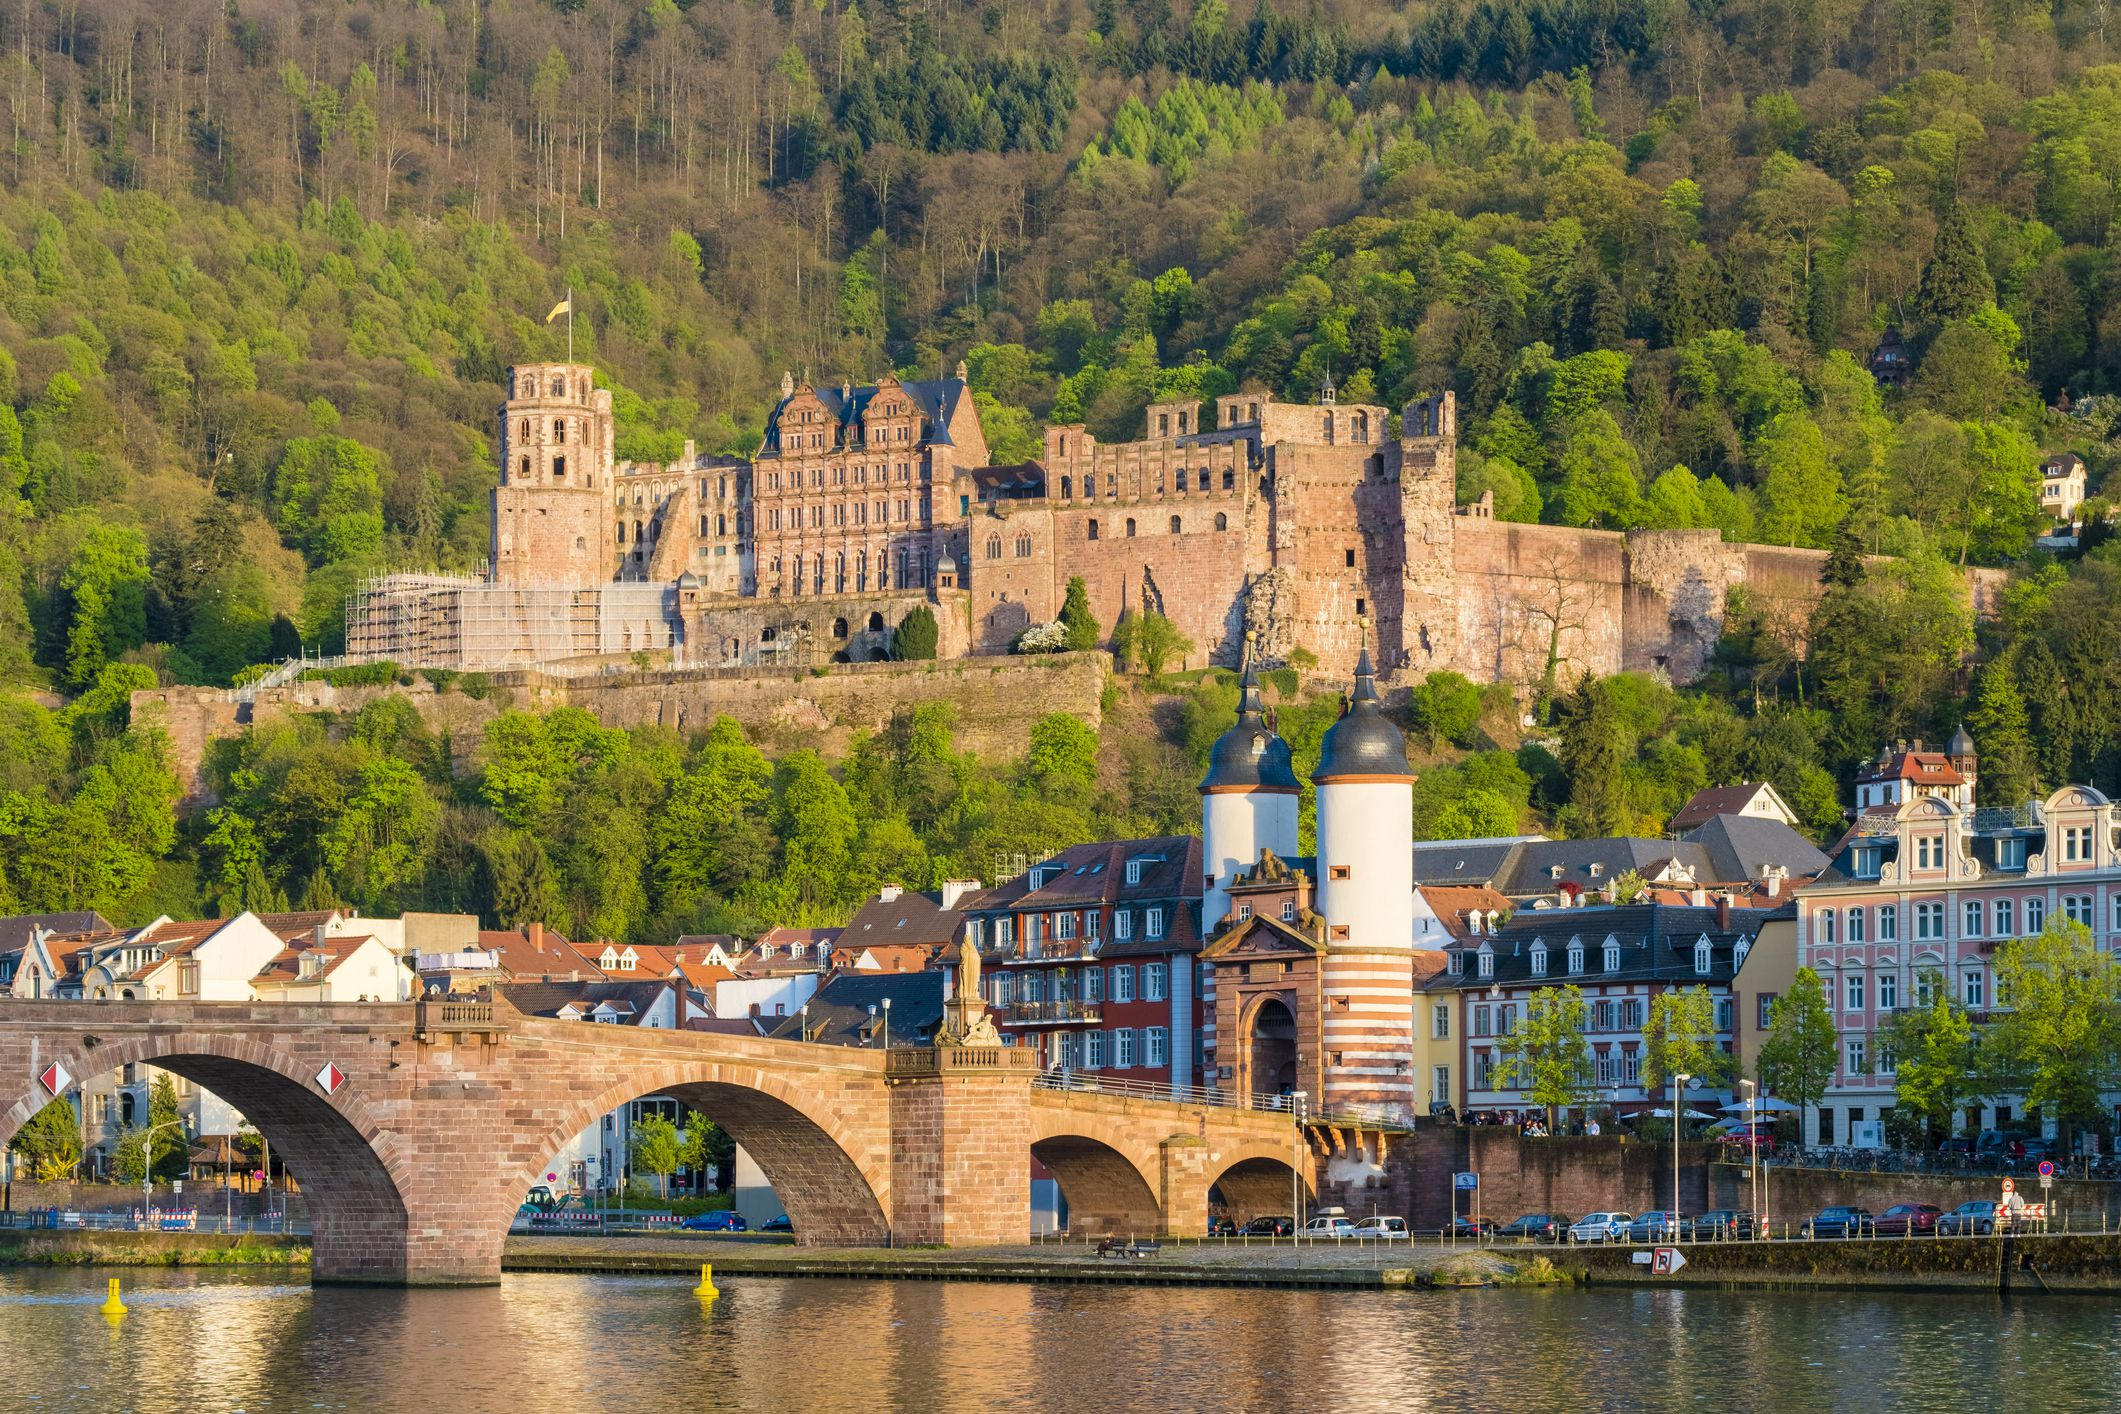 Visitor's Guide to Heidelberg Castle